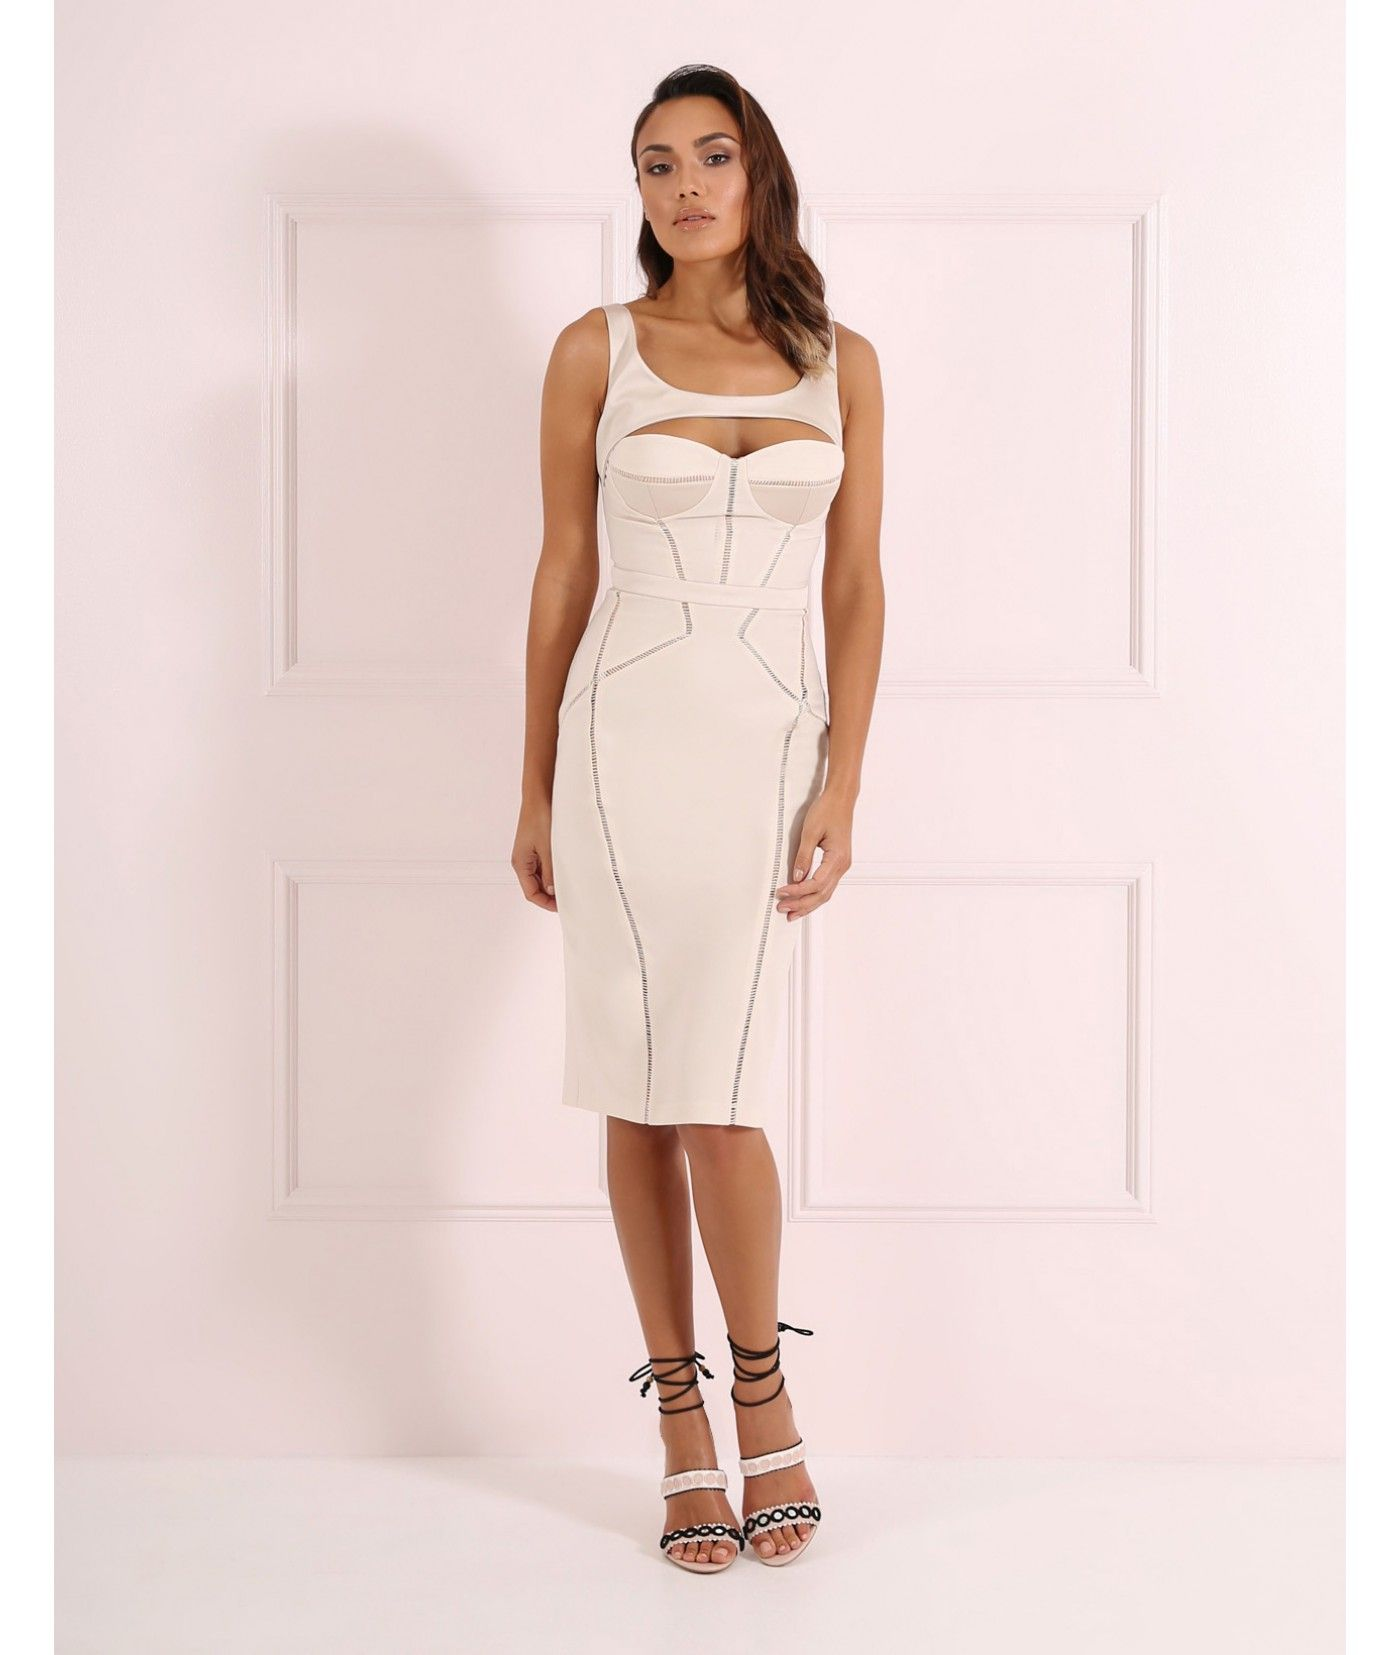 Sometimes You Can 39 T Go Wrong With A Neutral Coloured Dress And The Jane Pencil Dress Is No Exception With A Beautiful Pencil Dress Dresses Forever Unique